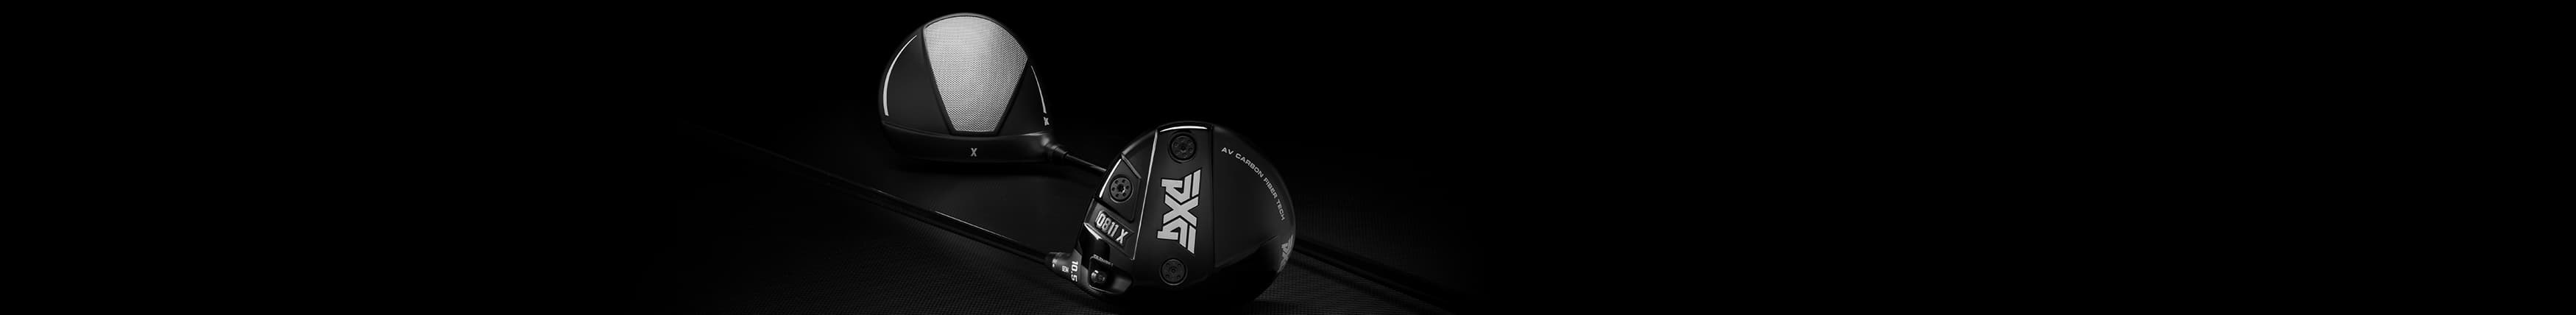 PXG GEN4 0811 X and XF Drivers